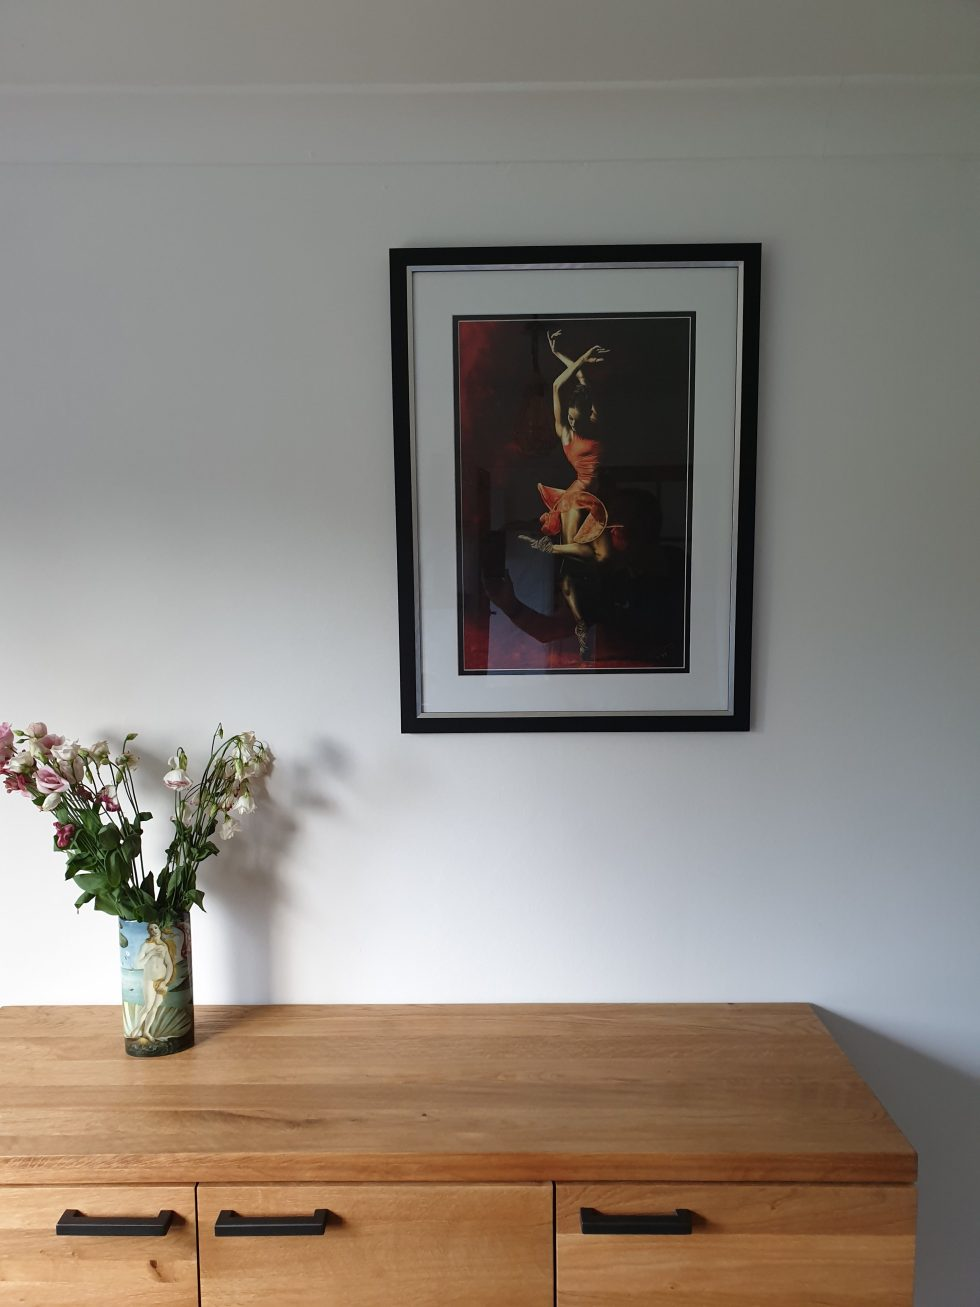 The Passion of Dance - Drew Jacoby. Ltd edition hand embellished giclée print - framed and hung in my home